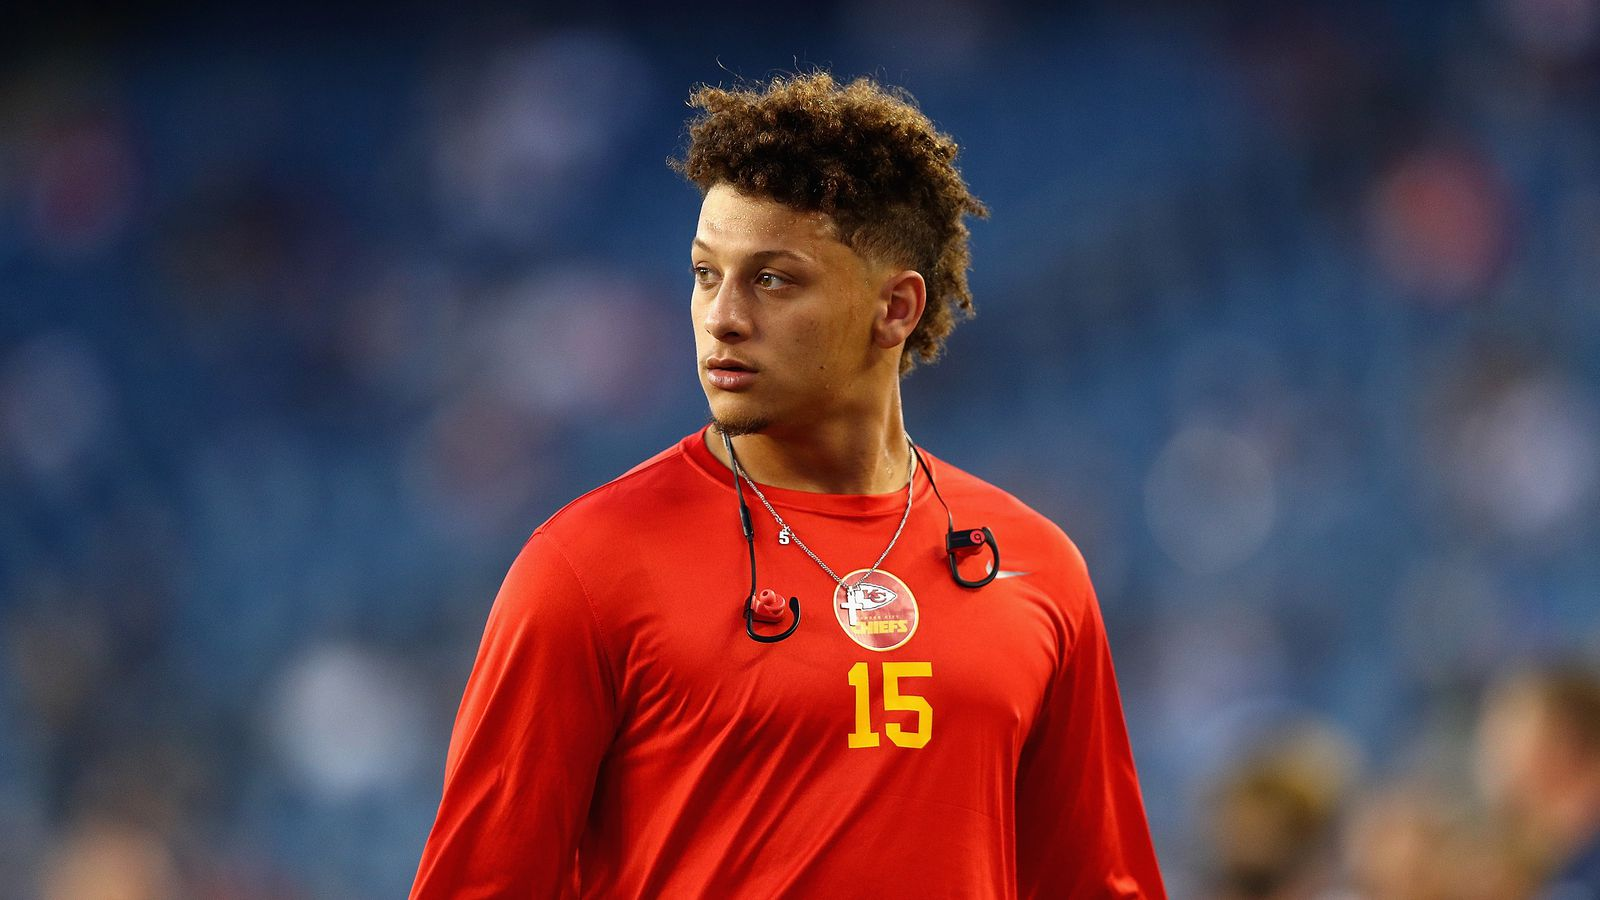 patrick mahomes - photo #9